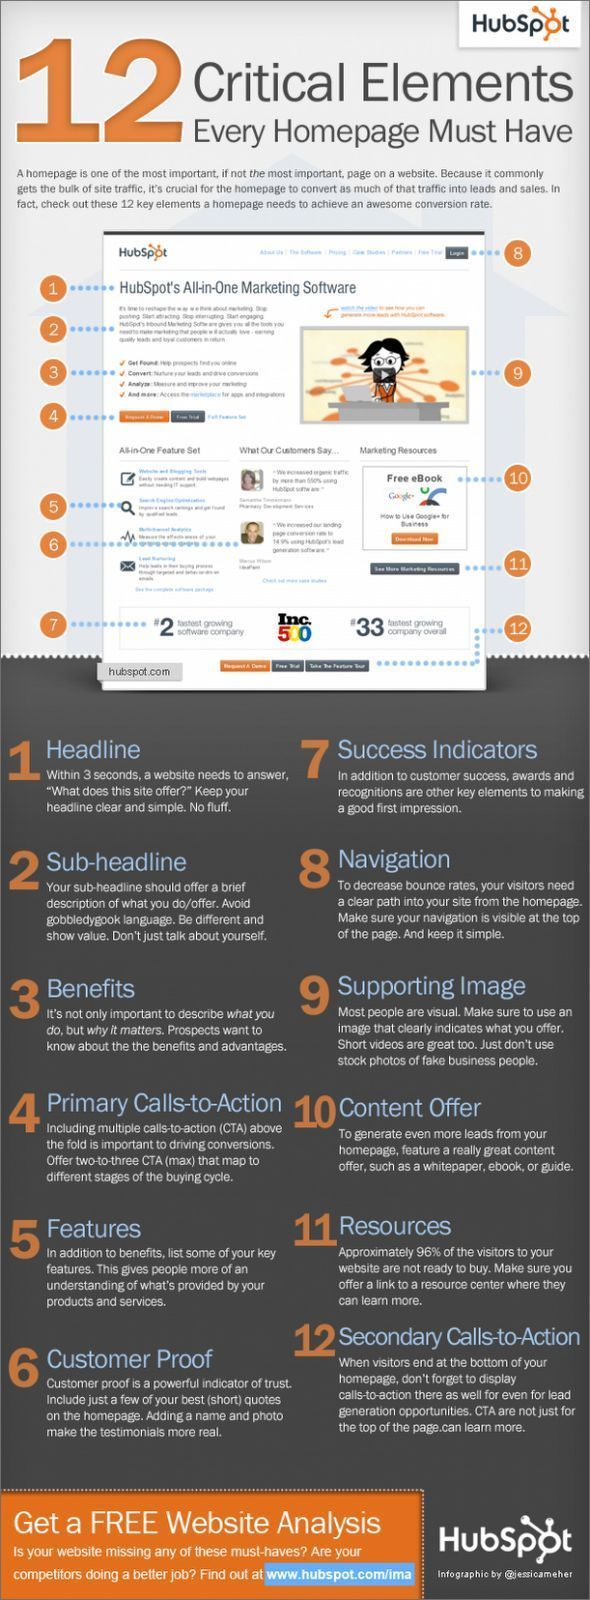 The 12 Elements of a Homepage